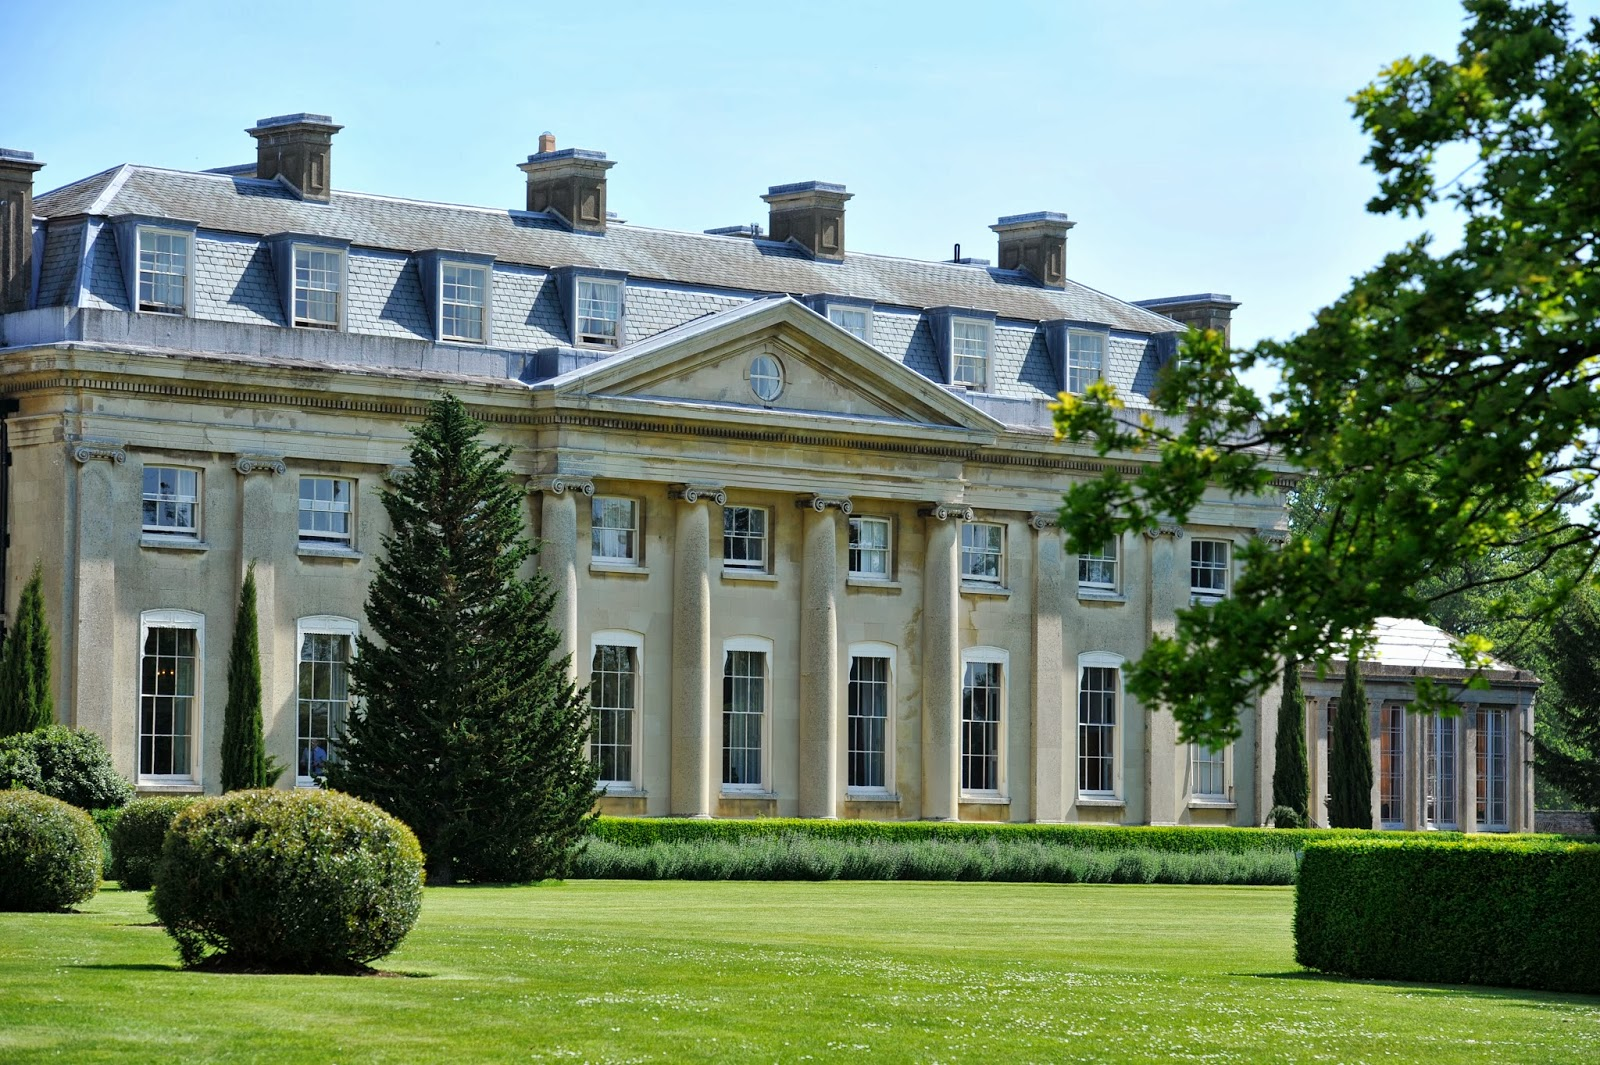 Luxury family holiday at the ickworth hotel suffollk for Small luxury hotel 7 little words